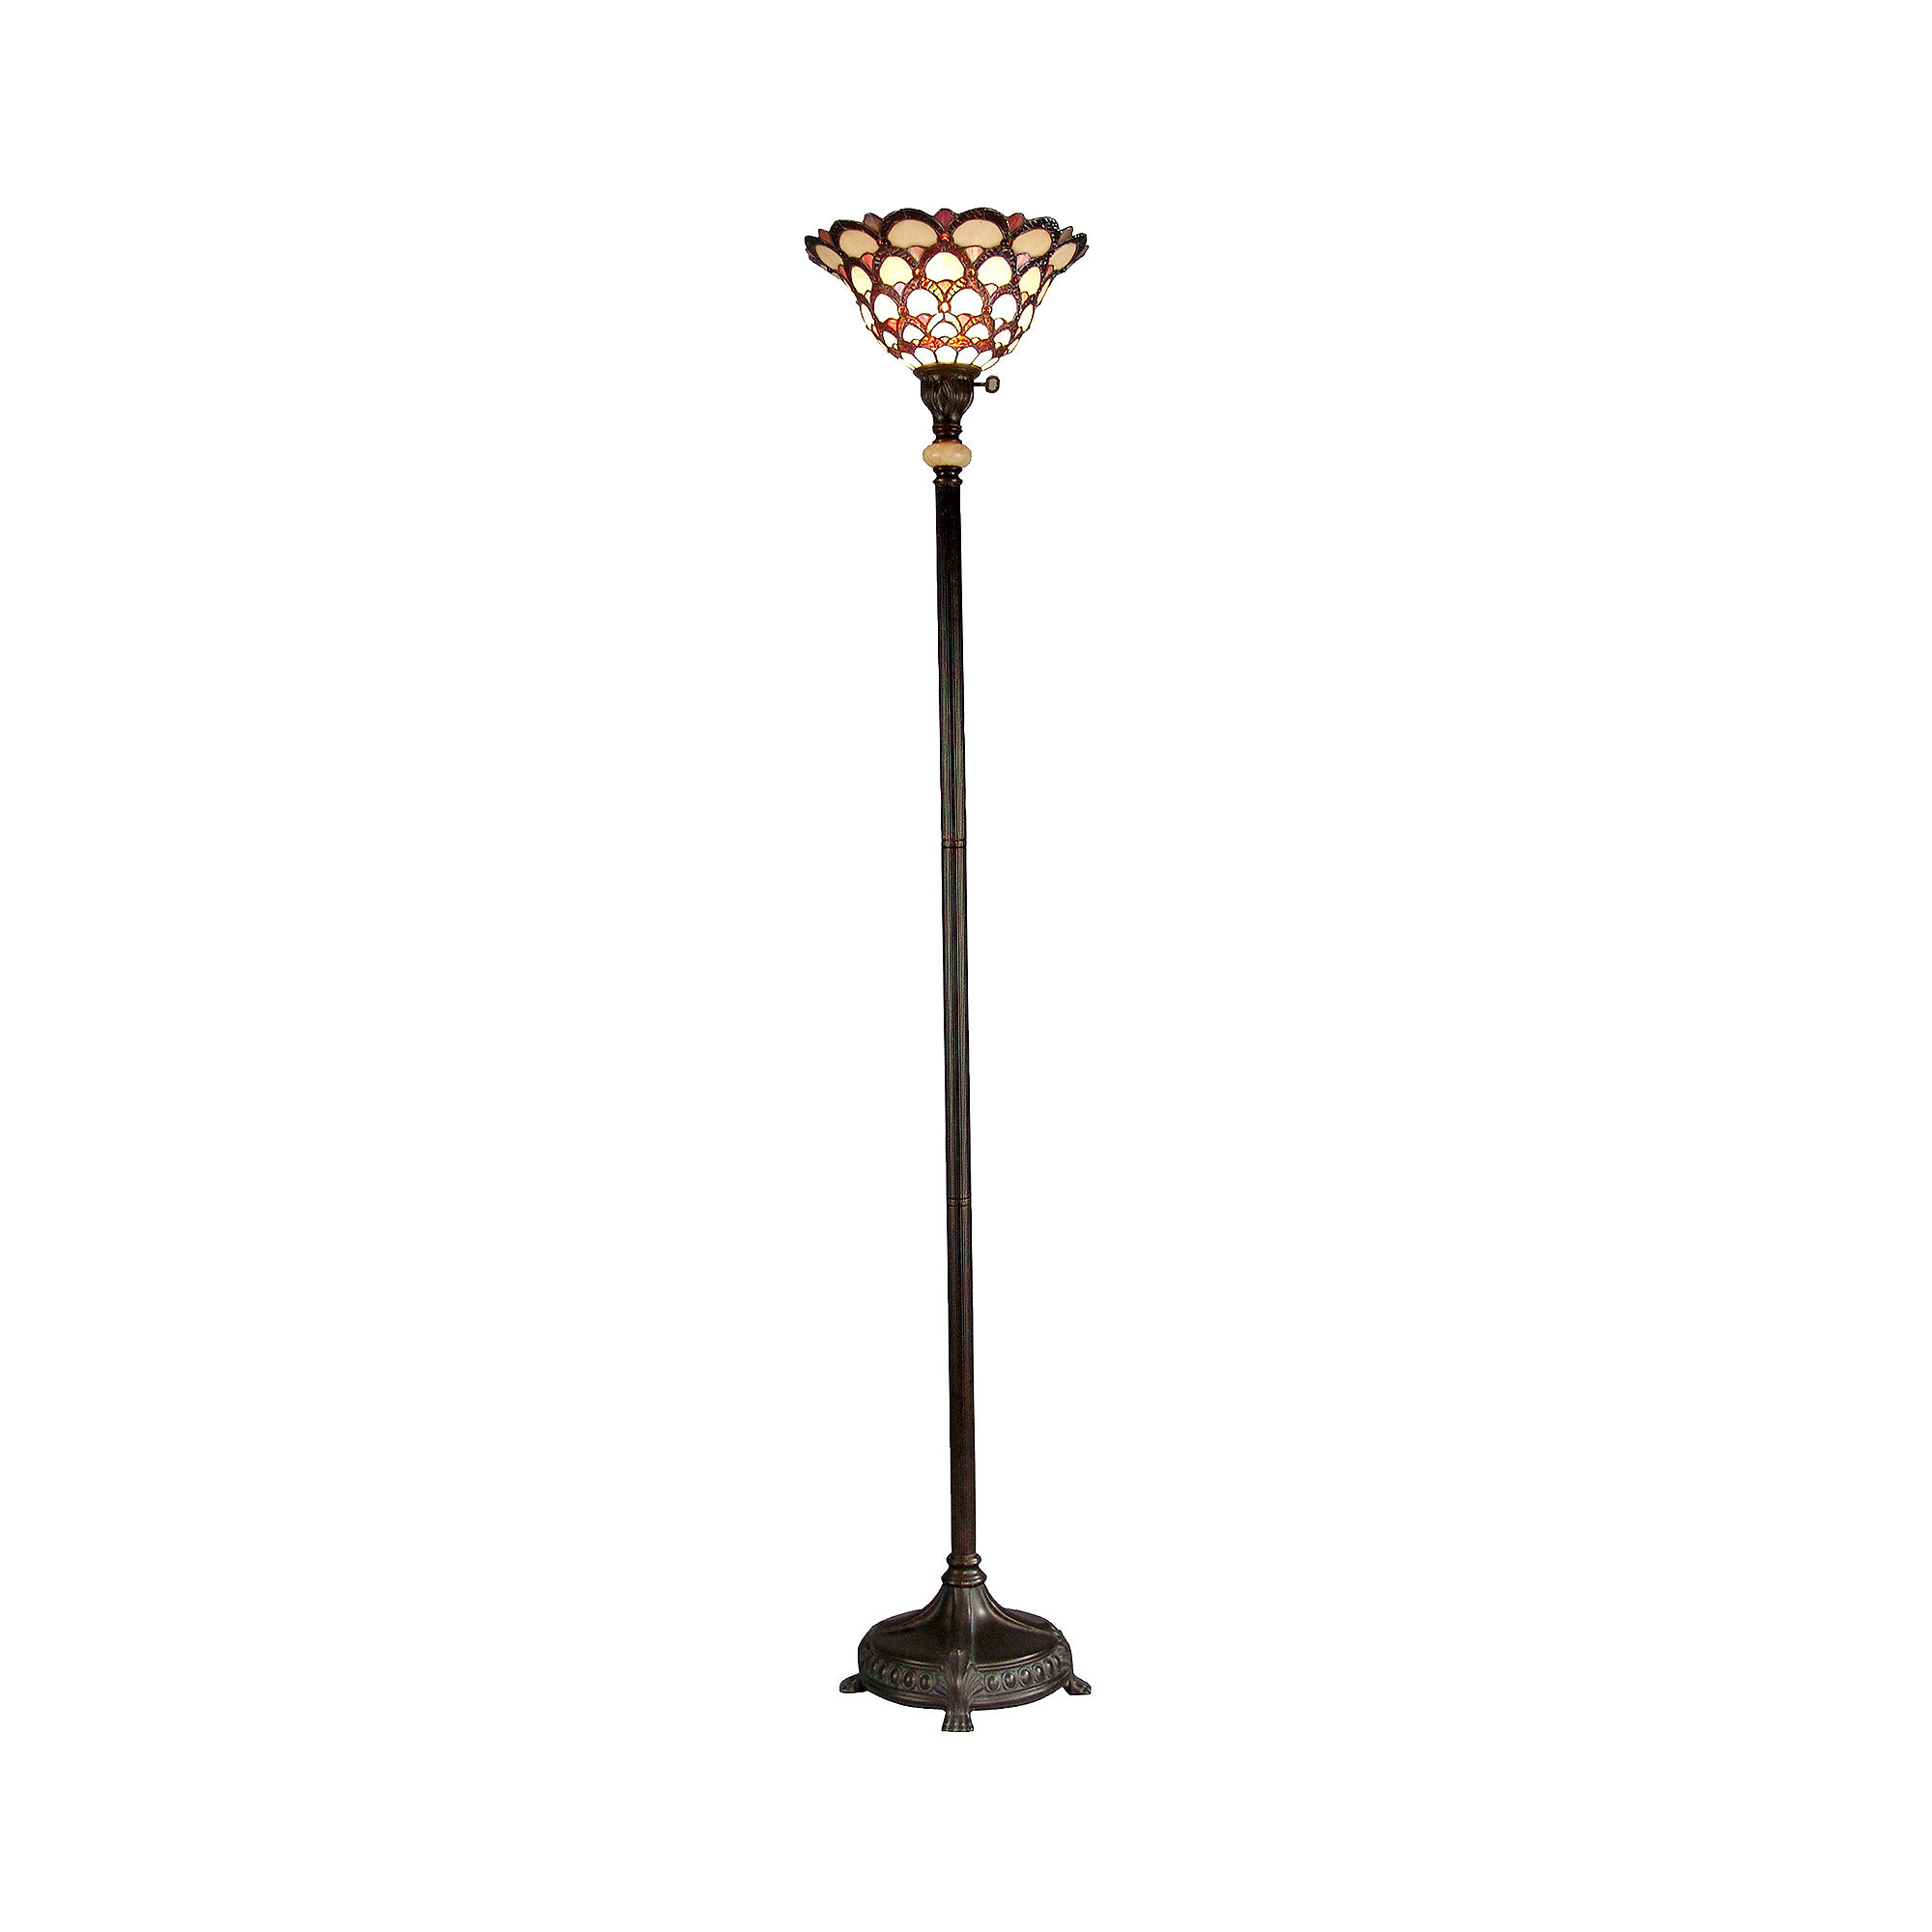 dale tiffany floor lamps buy dale tiffany floor lamp. Black Bedroom Furniture Sets. Home Design Ideas